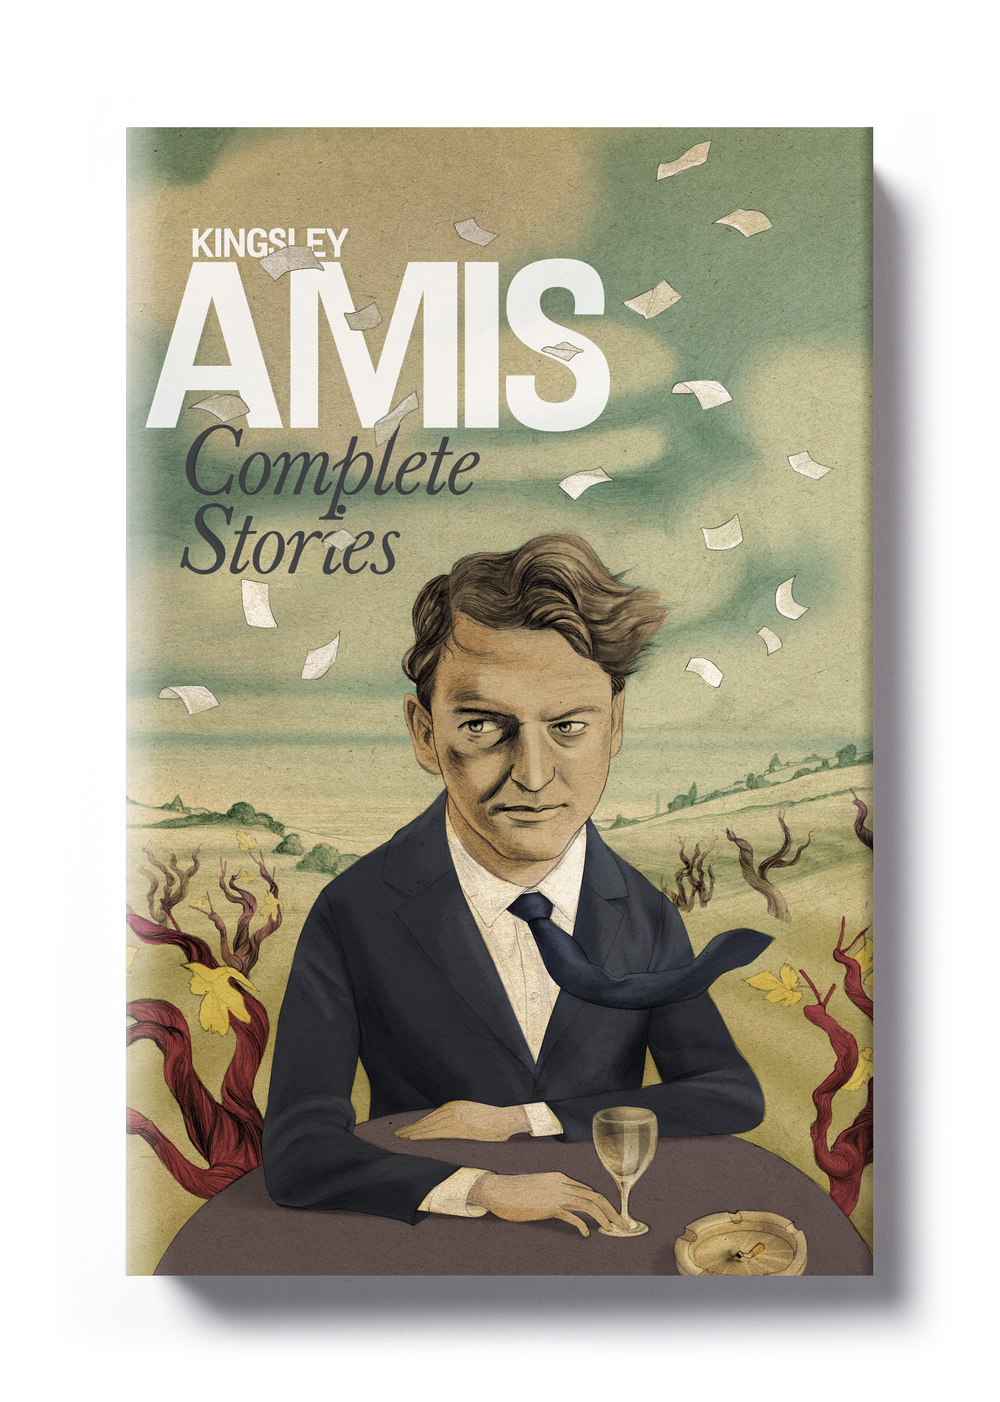 Complete Stories by Kingsley Amis - Design: Jim Stoddart Illustration: Jonathan Burton